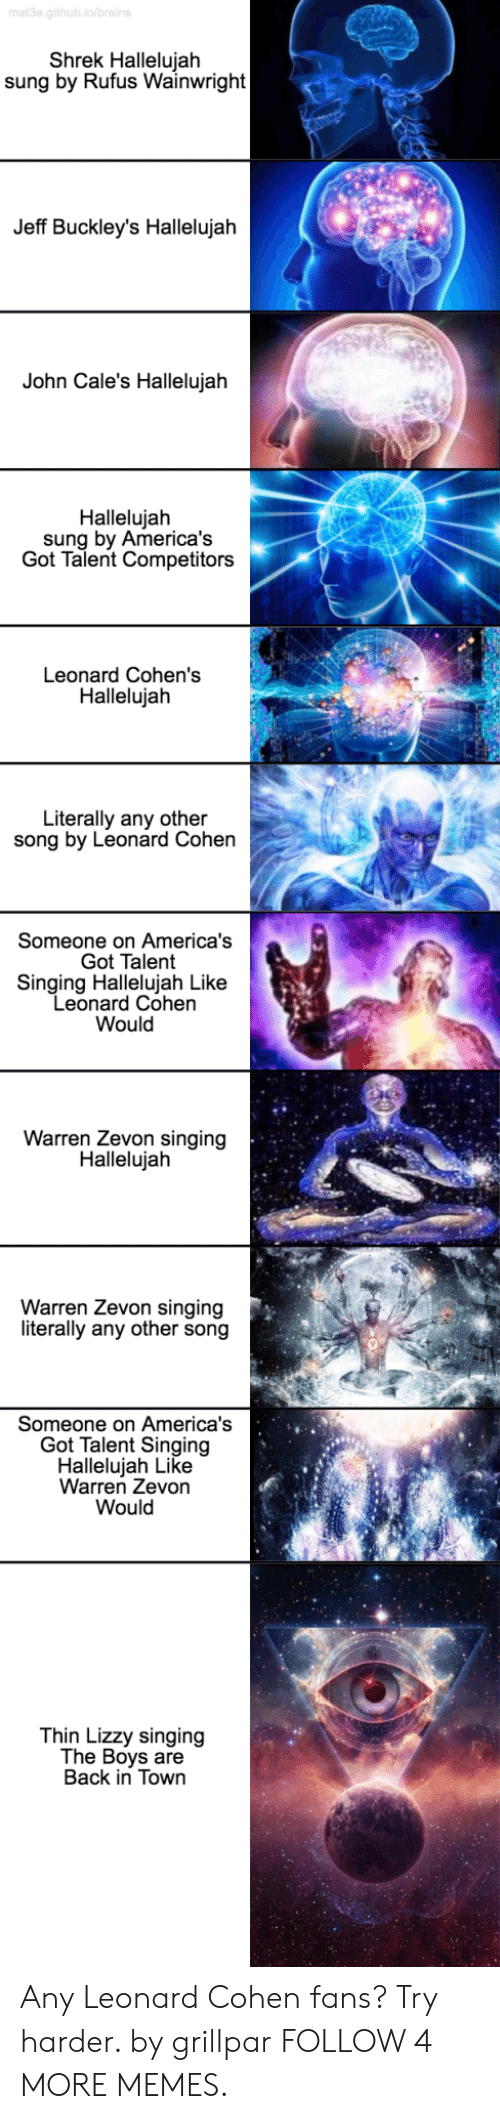 Thin Lizzy: mat3e.github.ia/brains  Shrek Hallelujah  sung by Rufus Wainwright  Jeff Buckley's Hallelujah  John Cale's Hallelujah  Hallelujah  sung by America's  Got Talent Competitors  Leonard Cohen's  Hallelujah  Literally any other  song by Leonard Cohen  Someone on America's  Got Talent  Singing Hallelujah Like  Leonard Cohen  Would  Warren Zevon singing  Hallelujah  Warren Zevon singing  literally any other song  Someone on America's  Got Talent Singing  Hallelujah Like  Warren Zevon  Would  Thin Lizzy singing  The Boys are  Back in Town Any Leonard Cohen fans? Try harder. by grillpar FOLLOW 4 MORE MEMES.